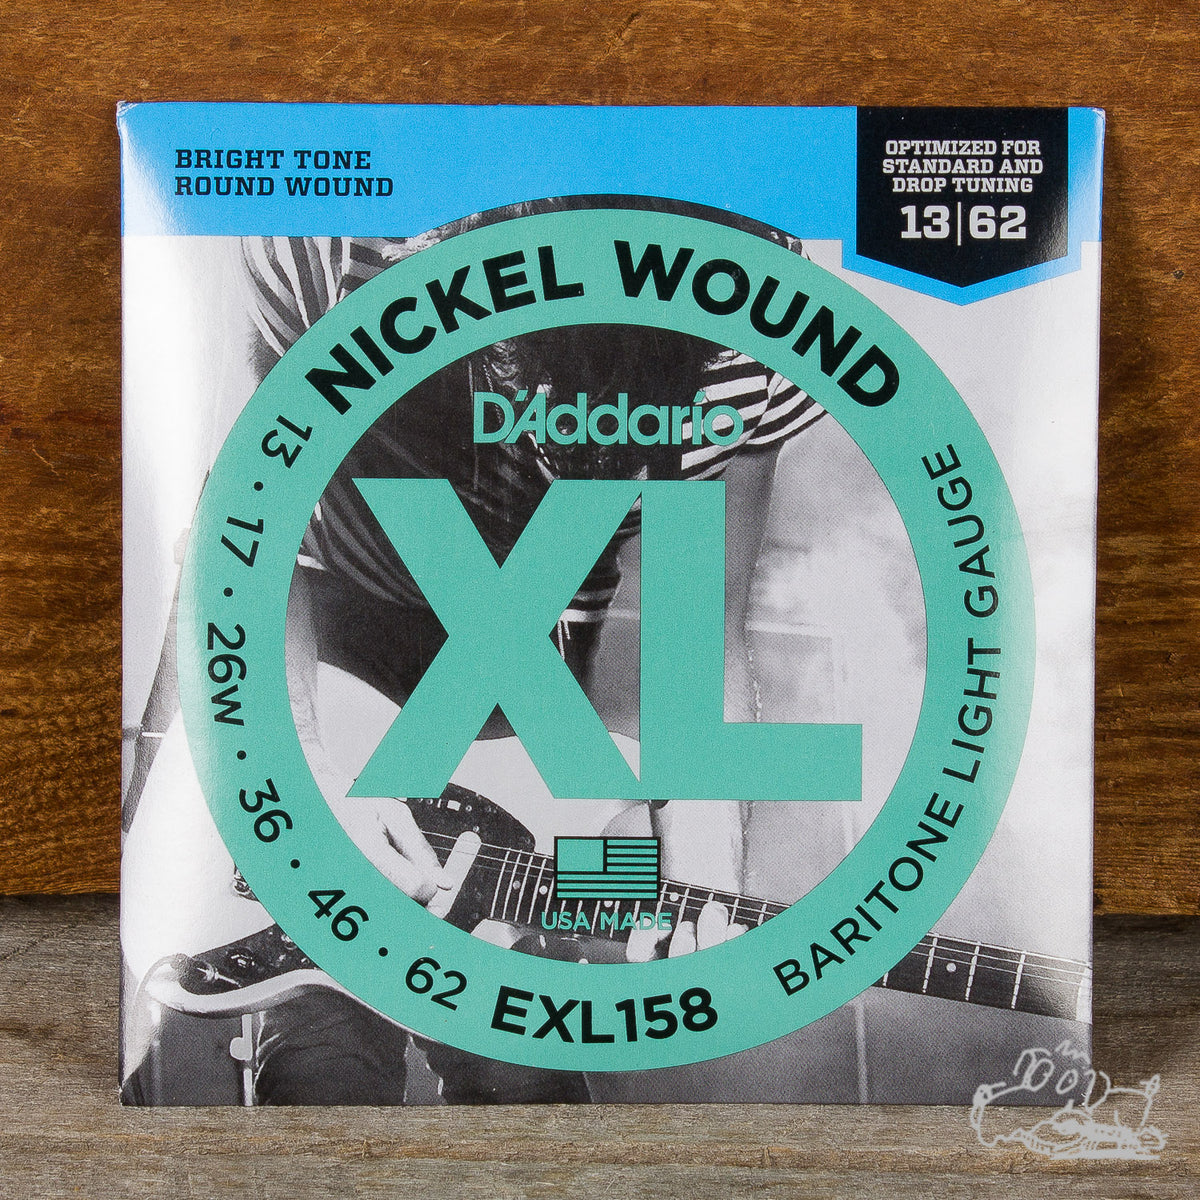 D'Addario XL Electric Baritone Guitar Strings - Nickel Wound - Light 13-62 (EXL158)